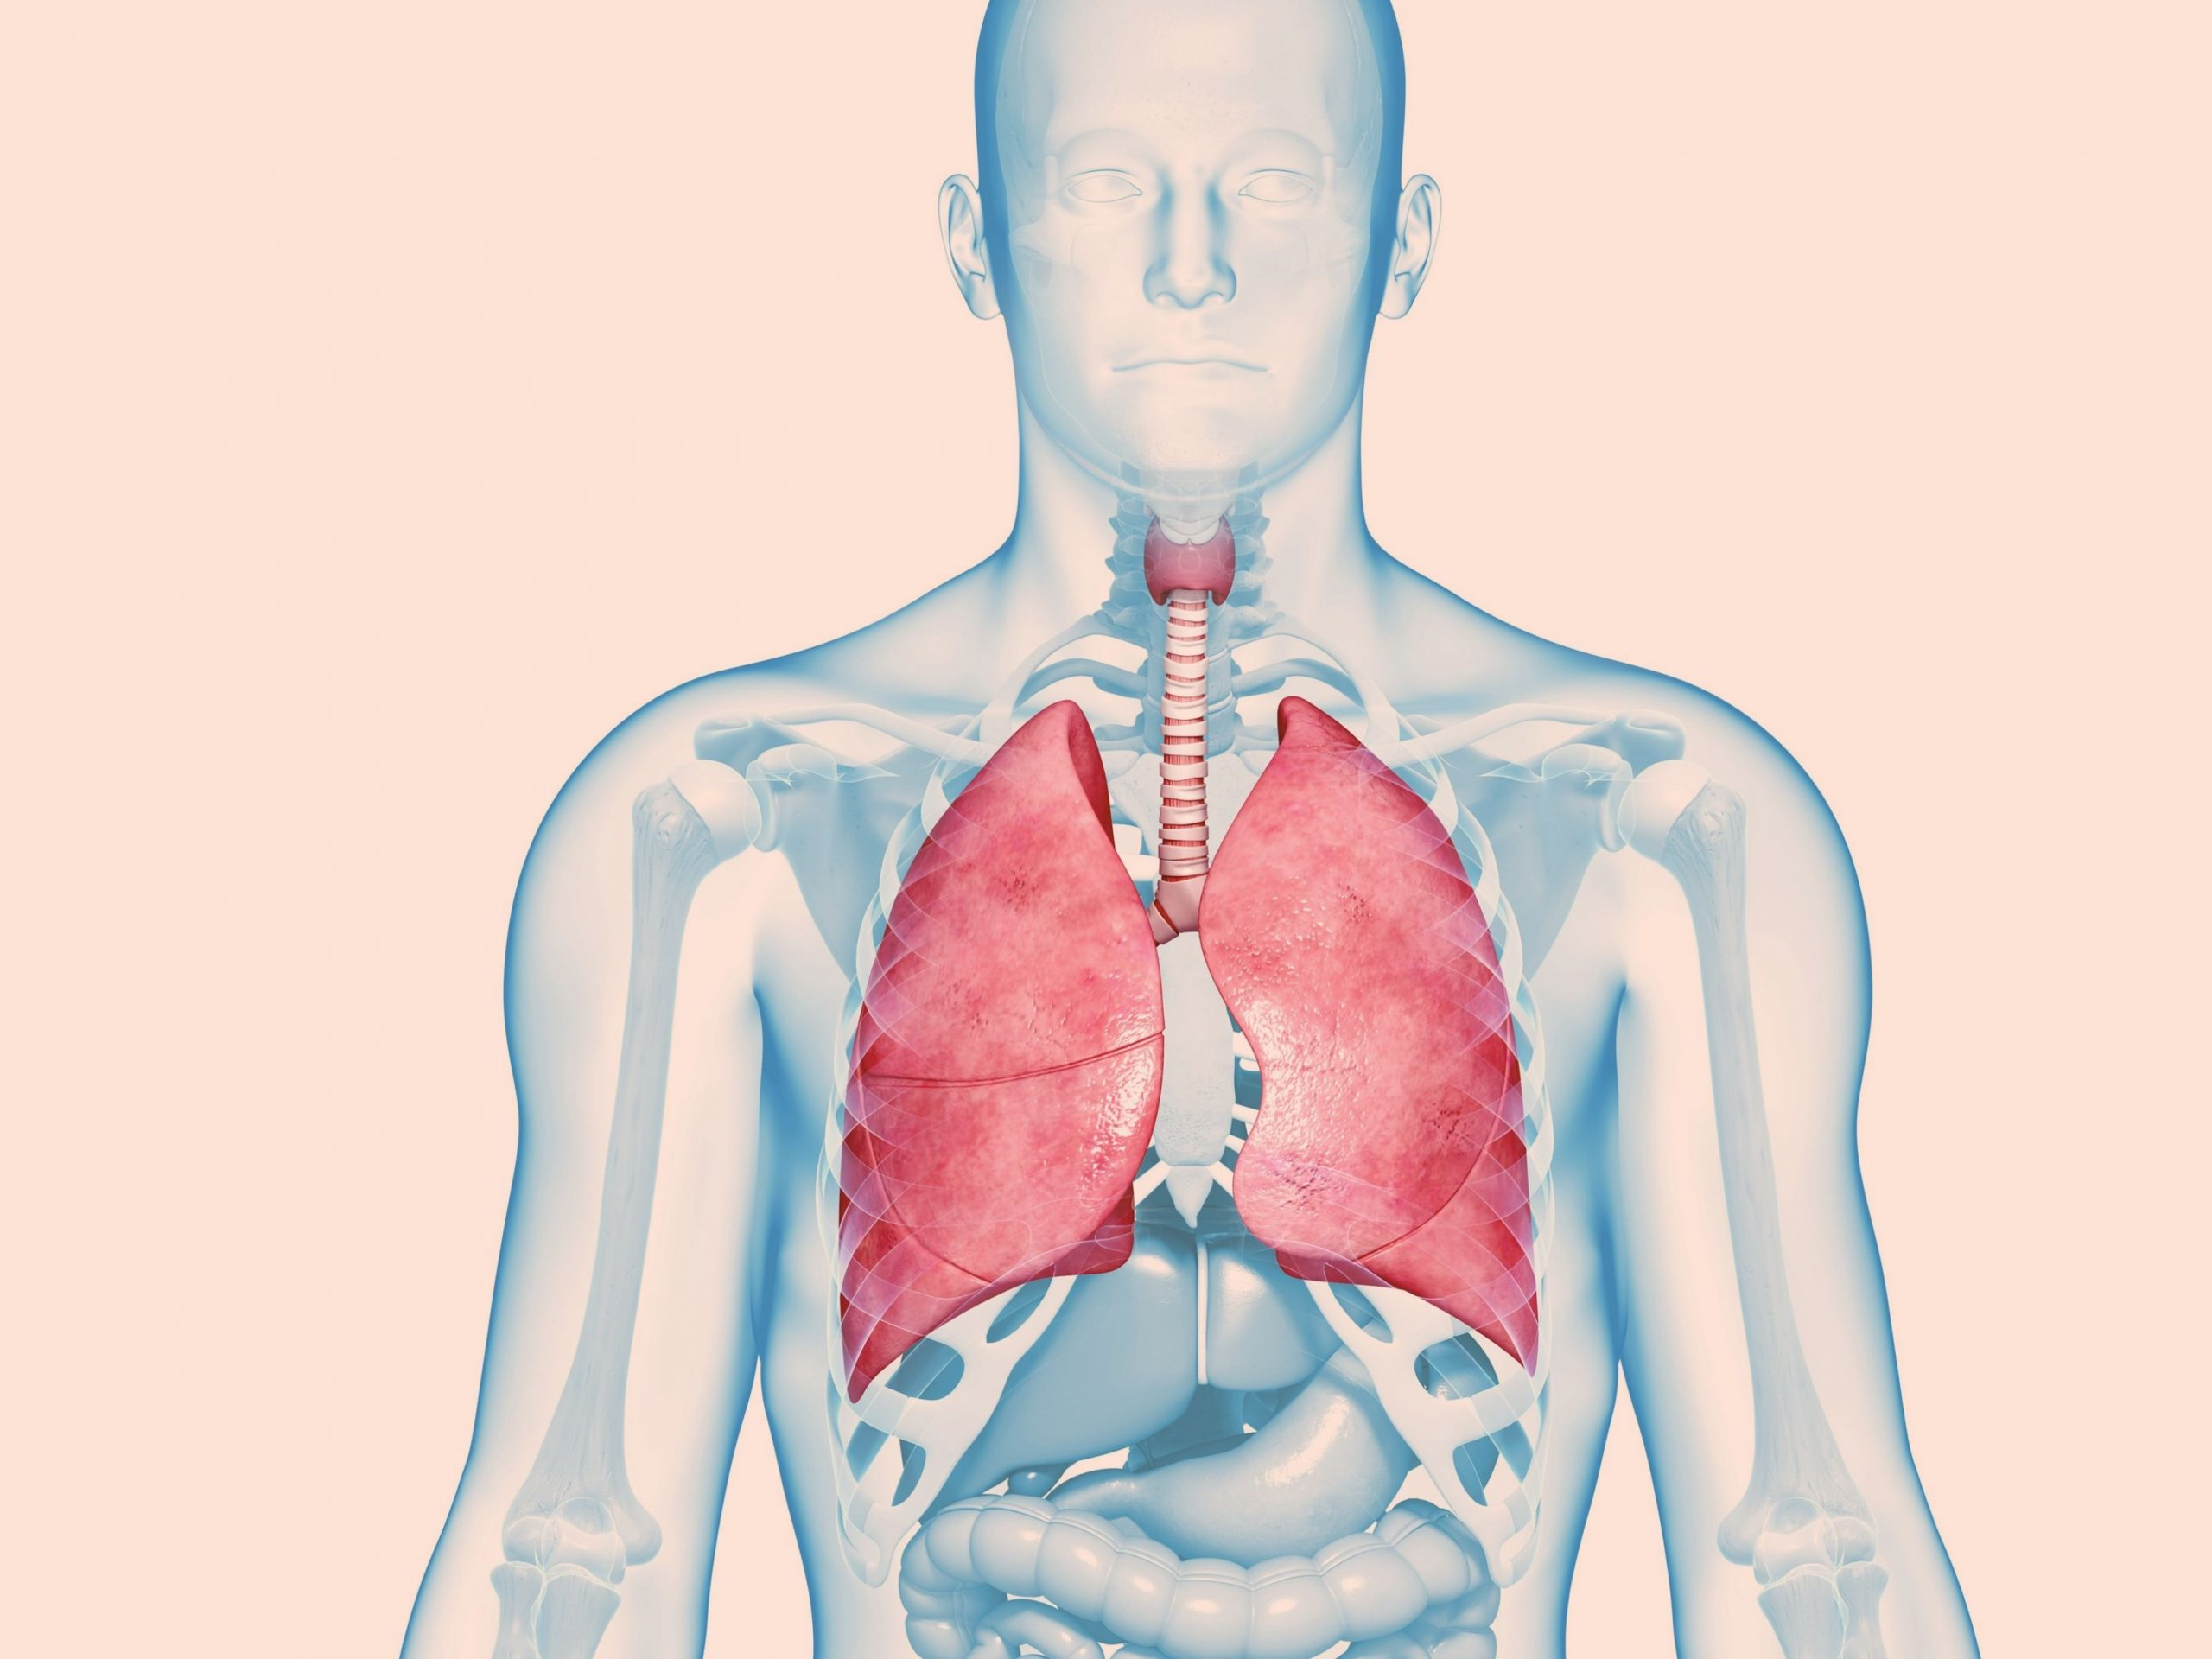 How can you drain mucus from the lungs?- 3 exercises you can do at home